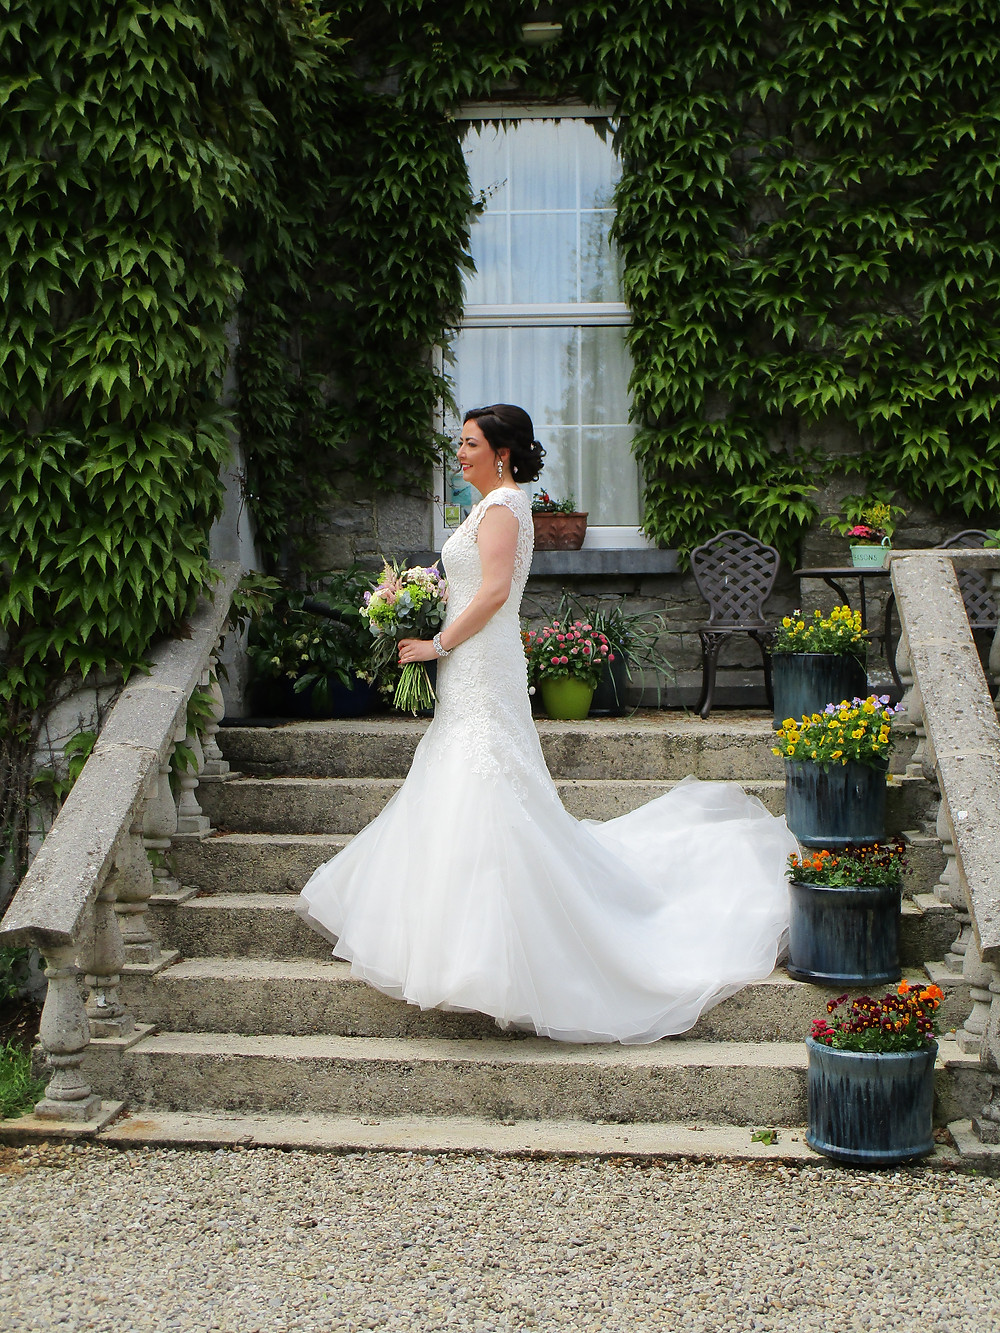 The Old Rectory Country House is an exclusive wedding venue in County Leitrim, Ireland